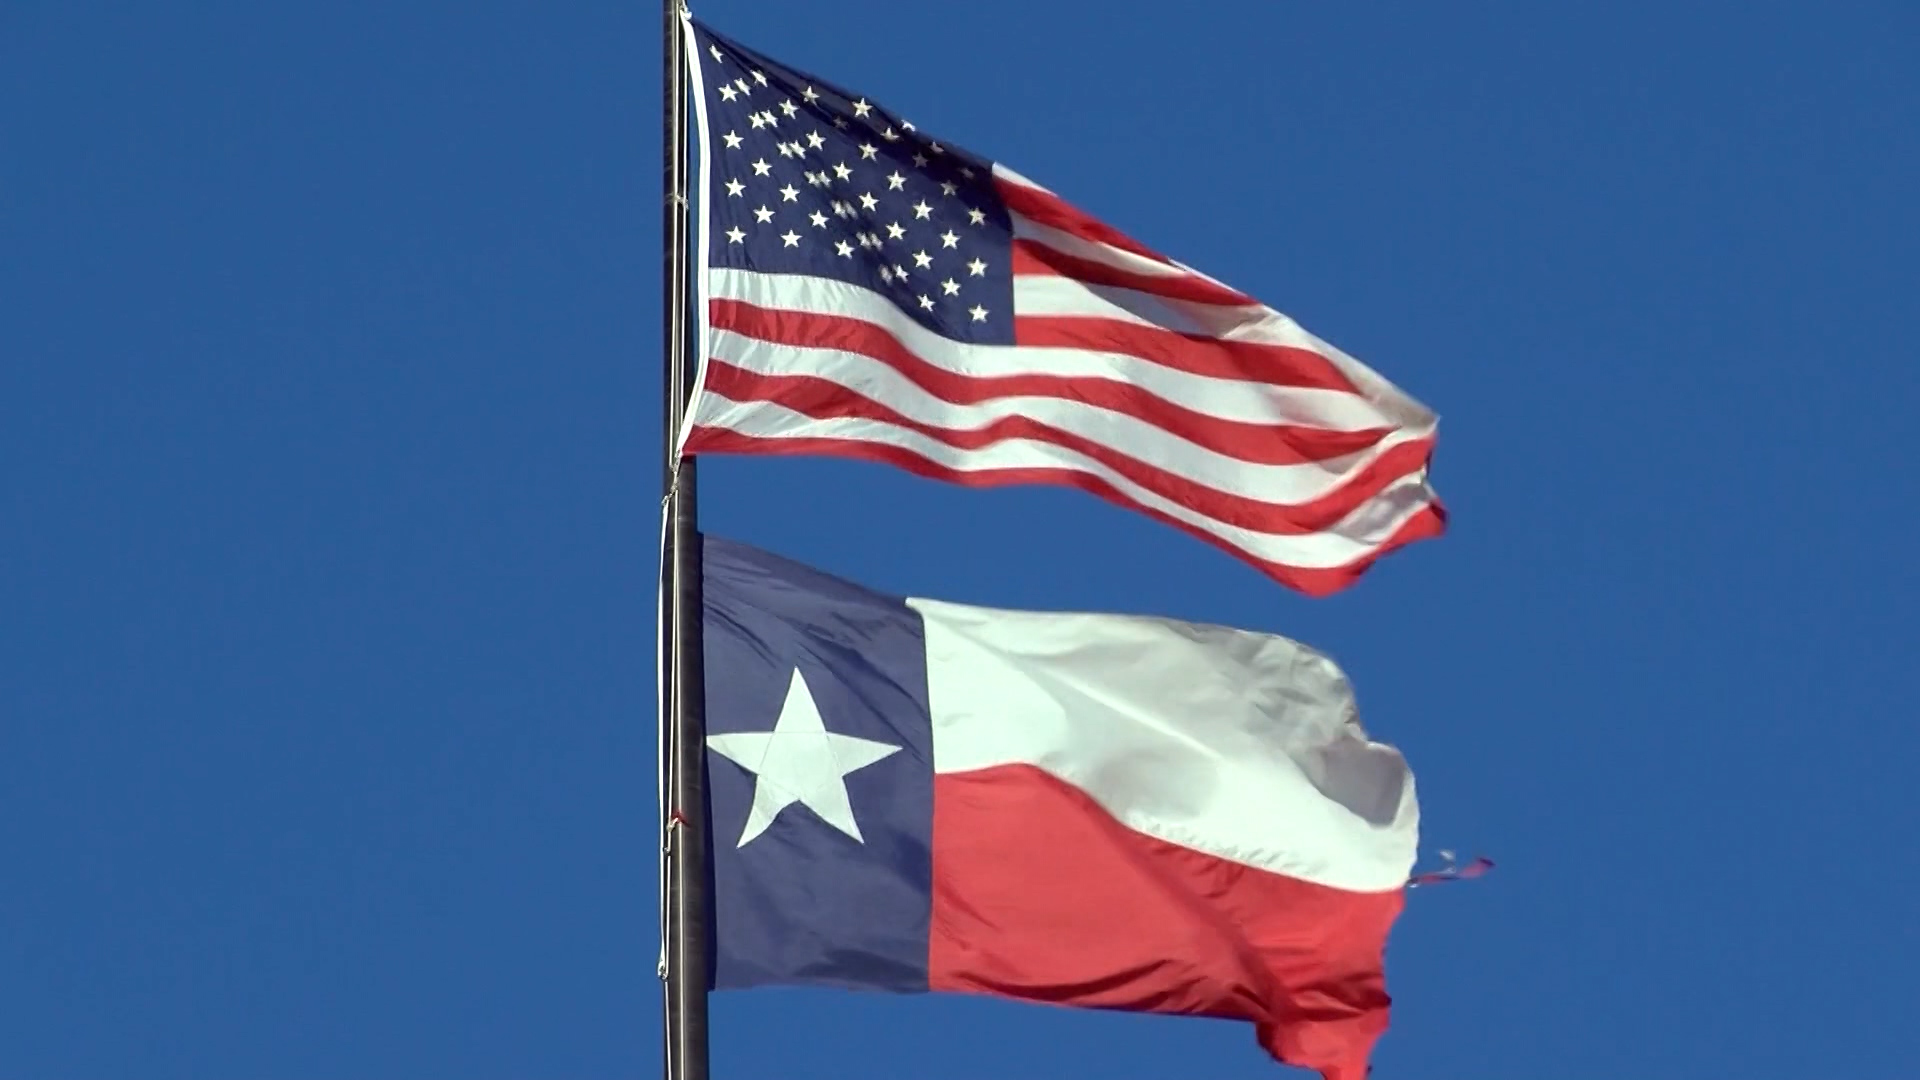 United States and Texas flags_272268